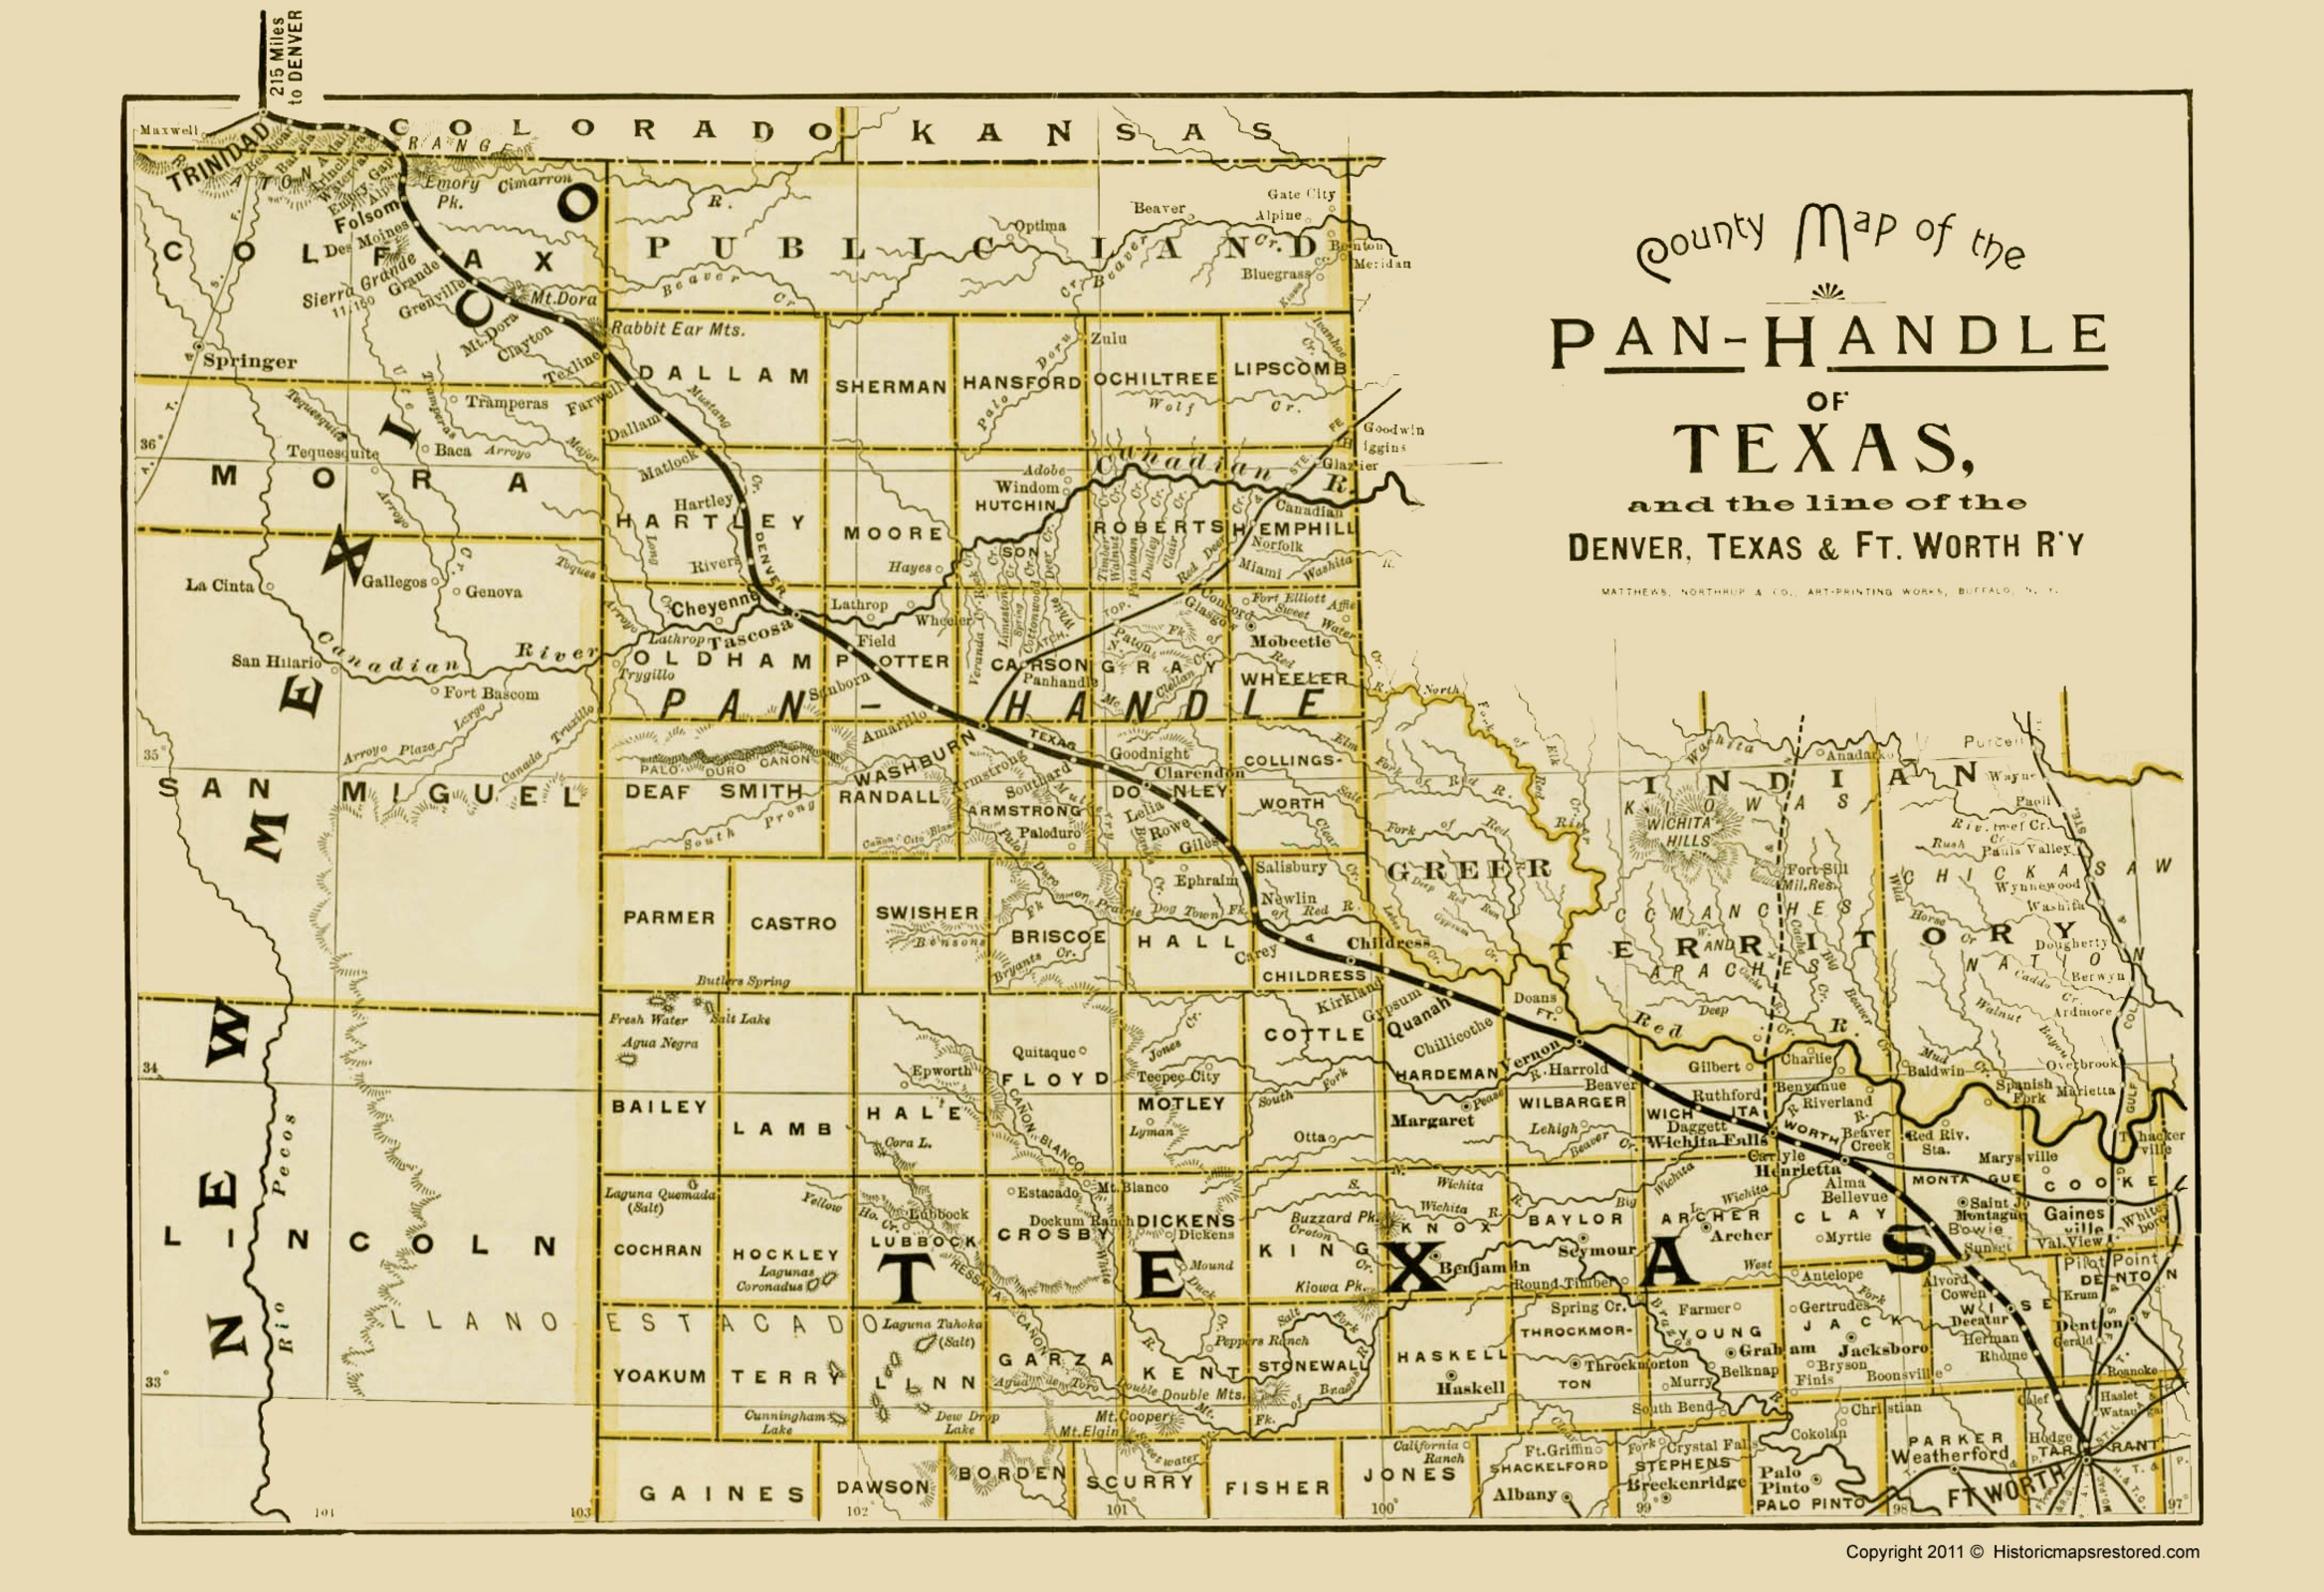 Old Railroad Maps | TEXAS PANHANDLE & DENVER/TEXAS/FT. WORTH RR BY NORTHRUP 1888